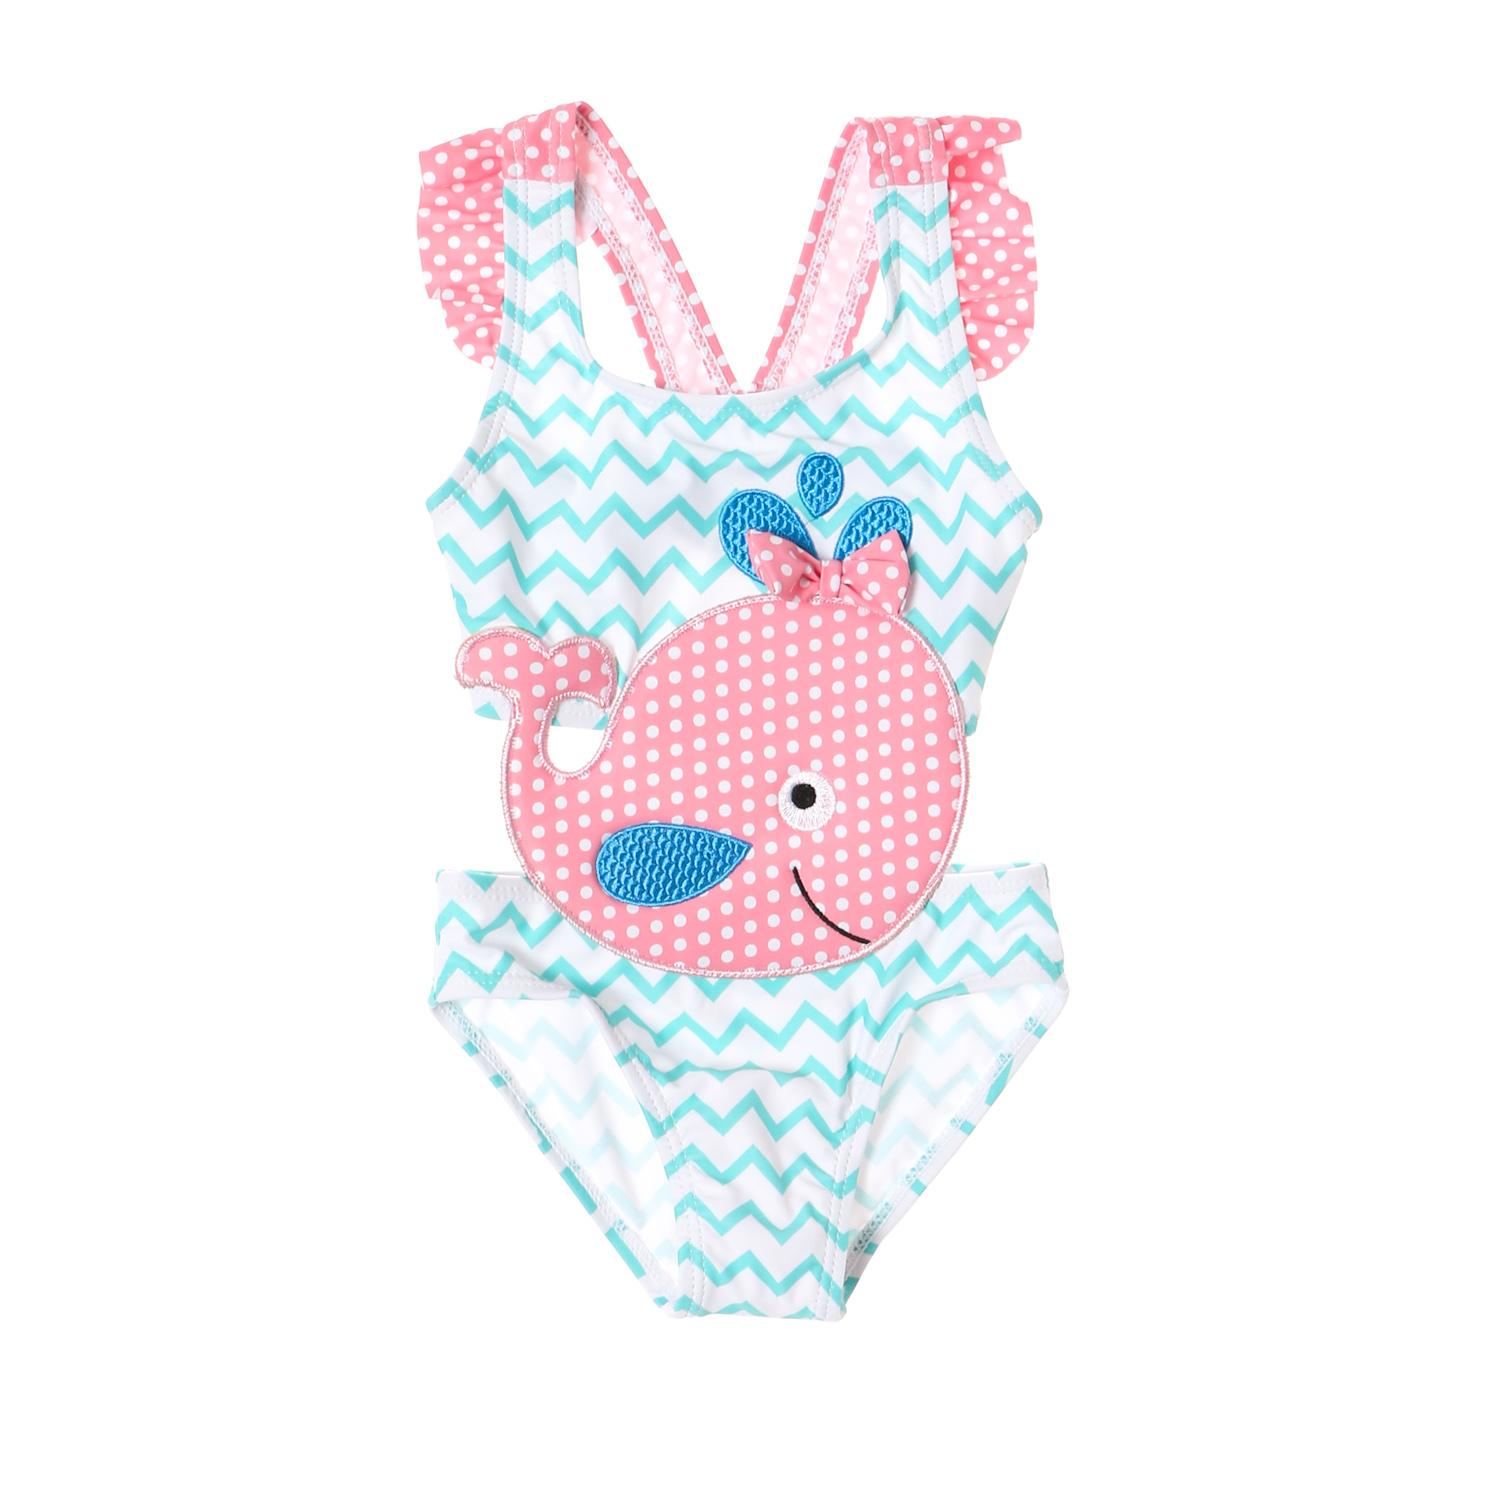 ca42ea1bf9a Sandbox Baby Girls Pink Whale One-piece Swimsuit in Multi-print